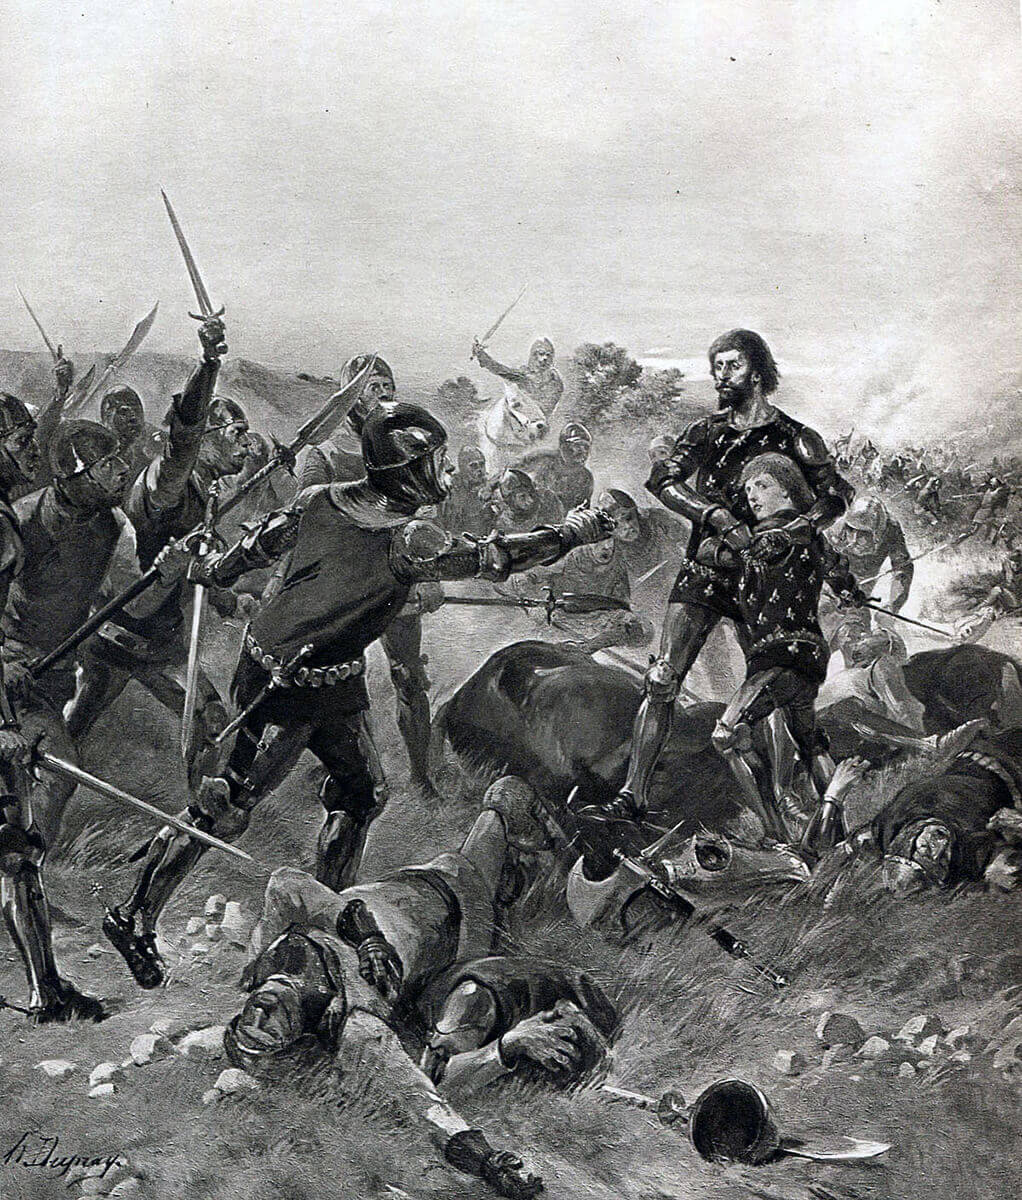 Capture of King John of France and his 14 year old son at the Battle of Poitiers on 19th September 1356 in the Hundred Years: picture by Henri Dupray